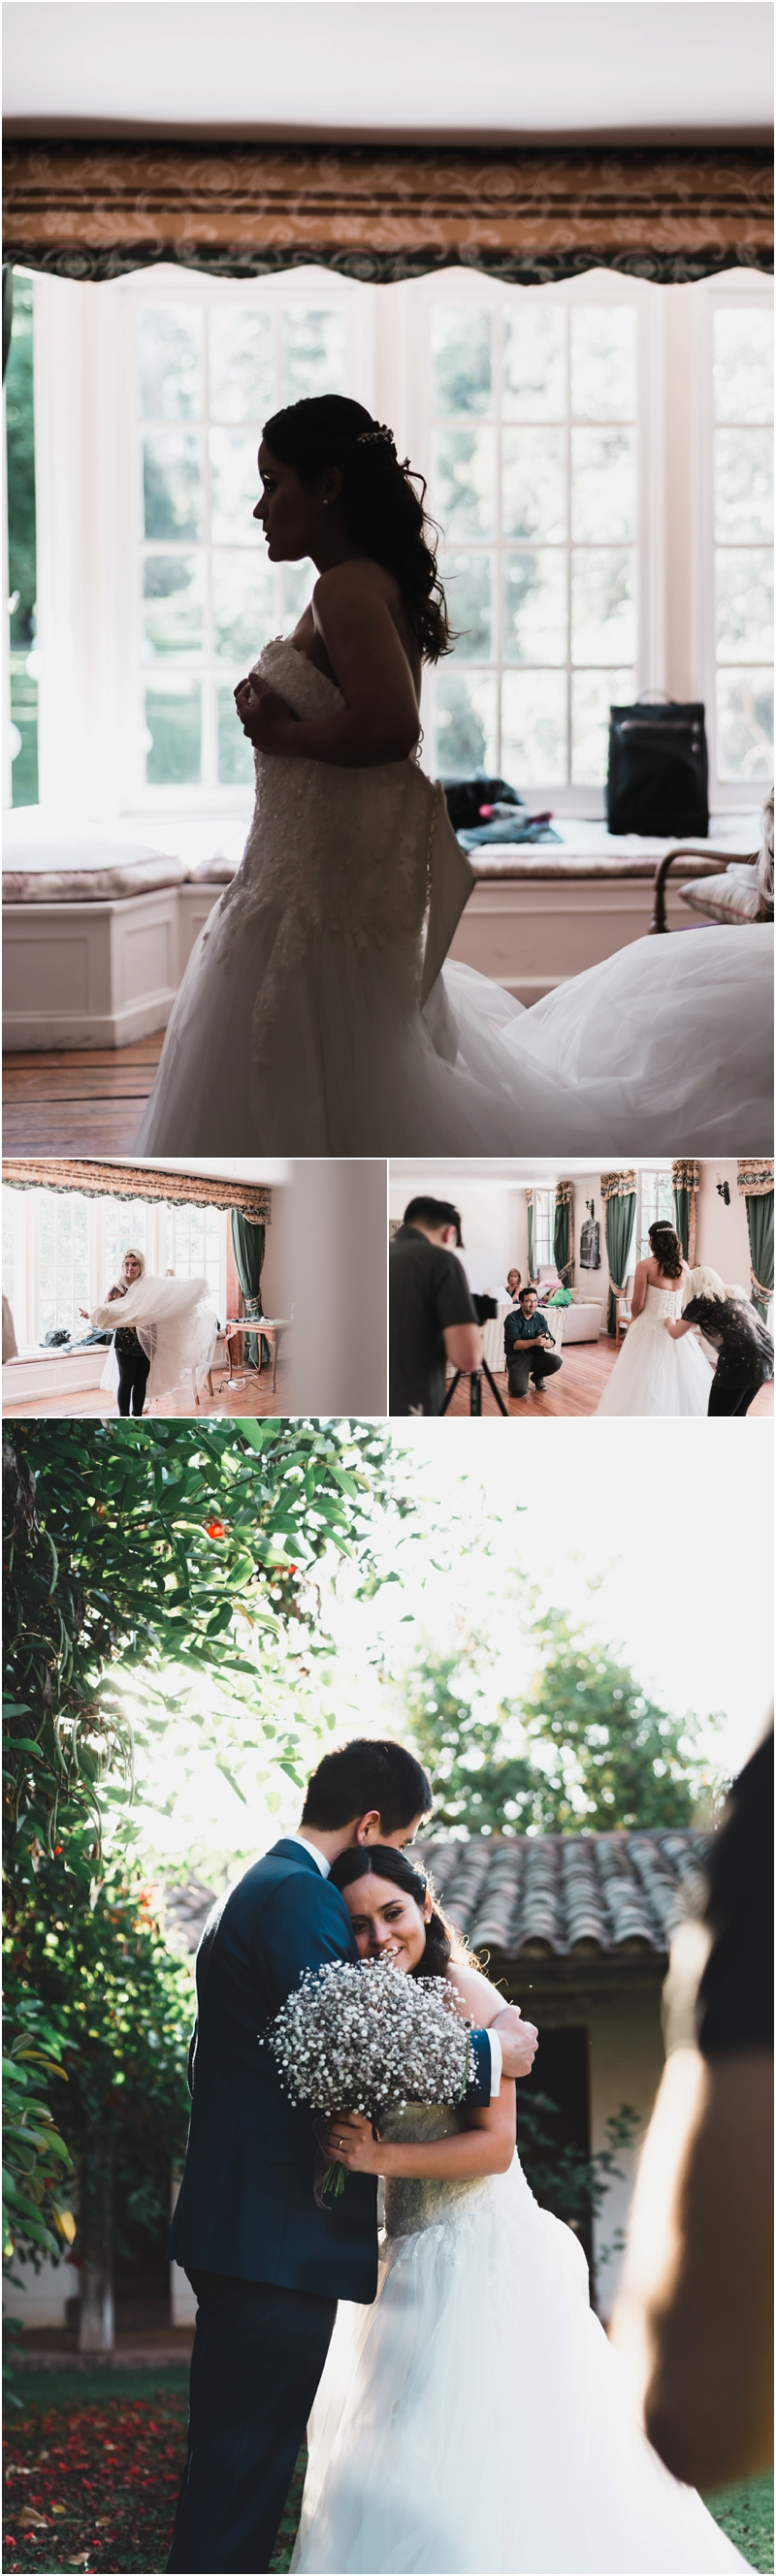 Fotografía de Matrimonio, Ampersand Wedding Films, Santiago, Chile